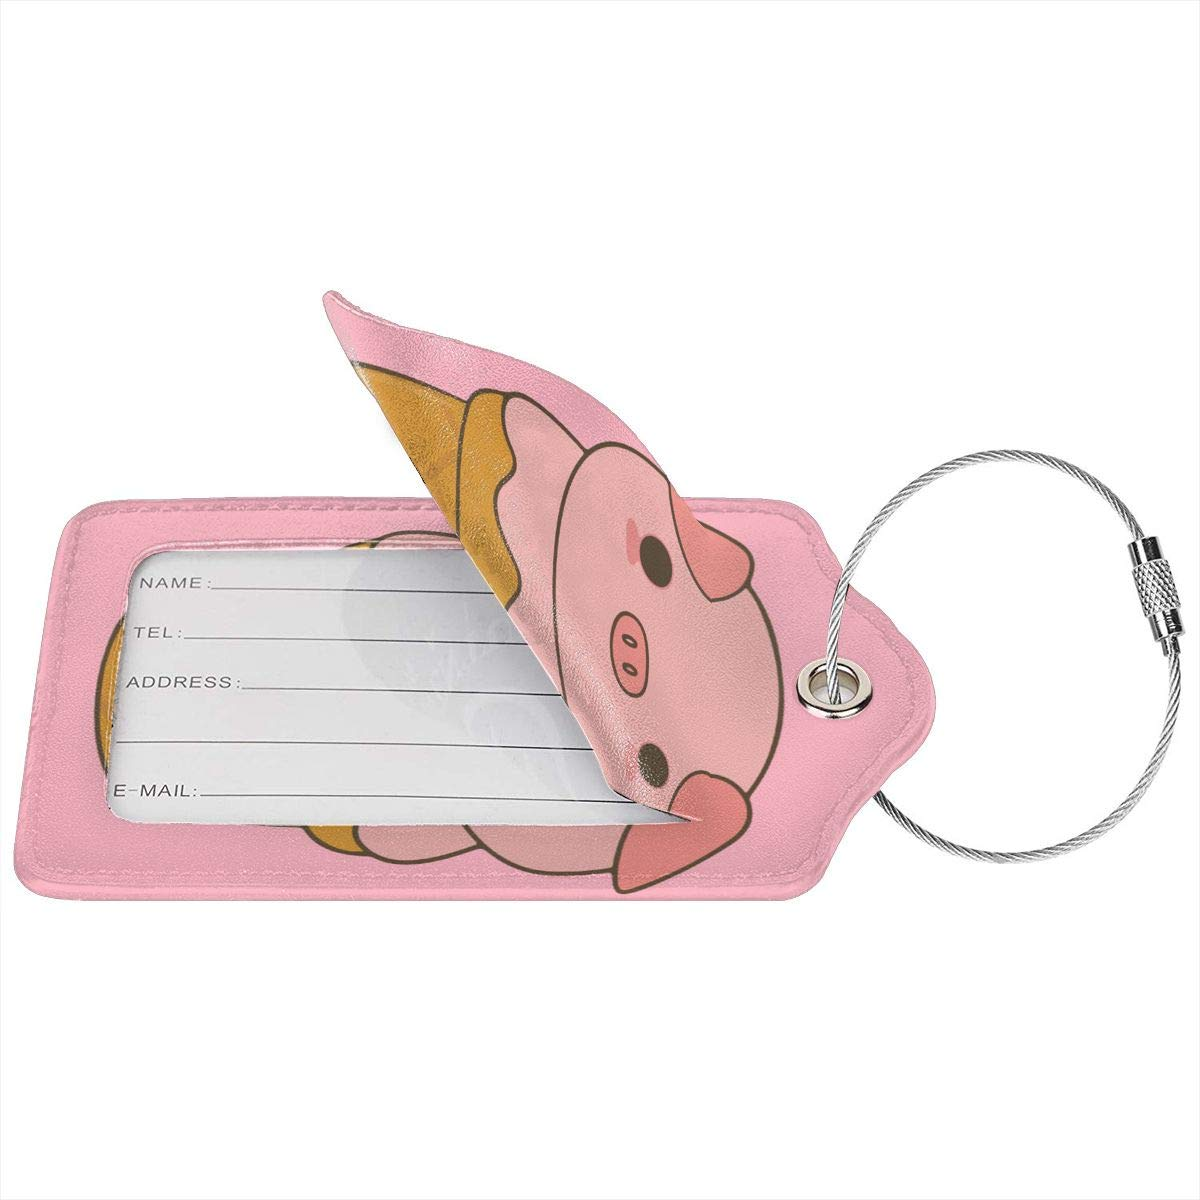 Cute Ice Cream Pig Leather Luggage Tags Suitcase Tag Travel Bag Labels With Privacy Cover For Men Women 2 Pack 4 Pack